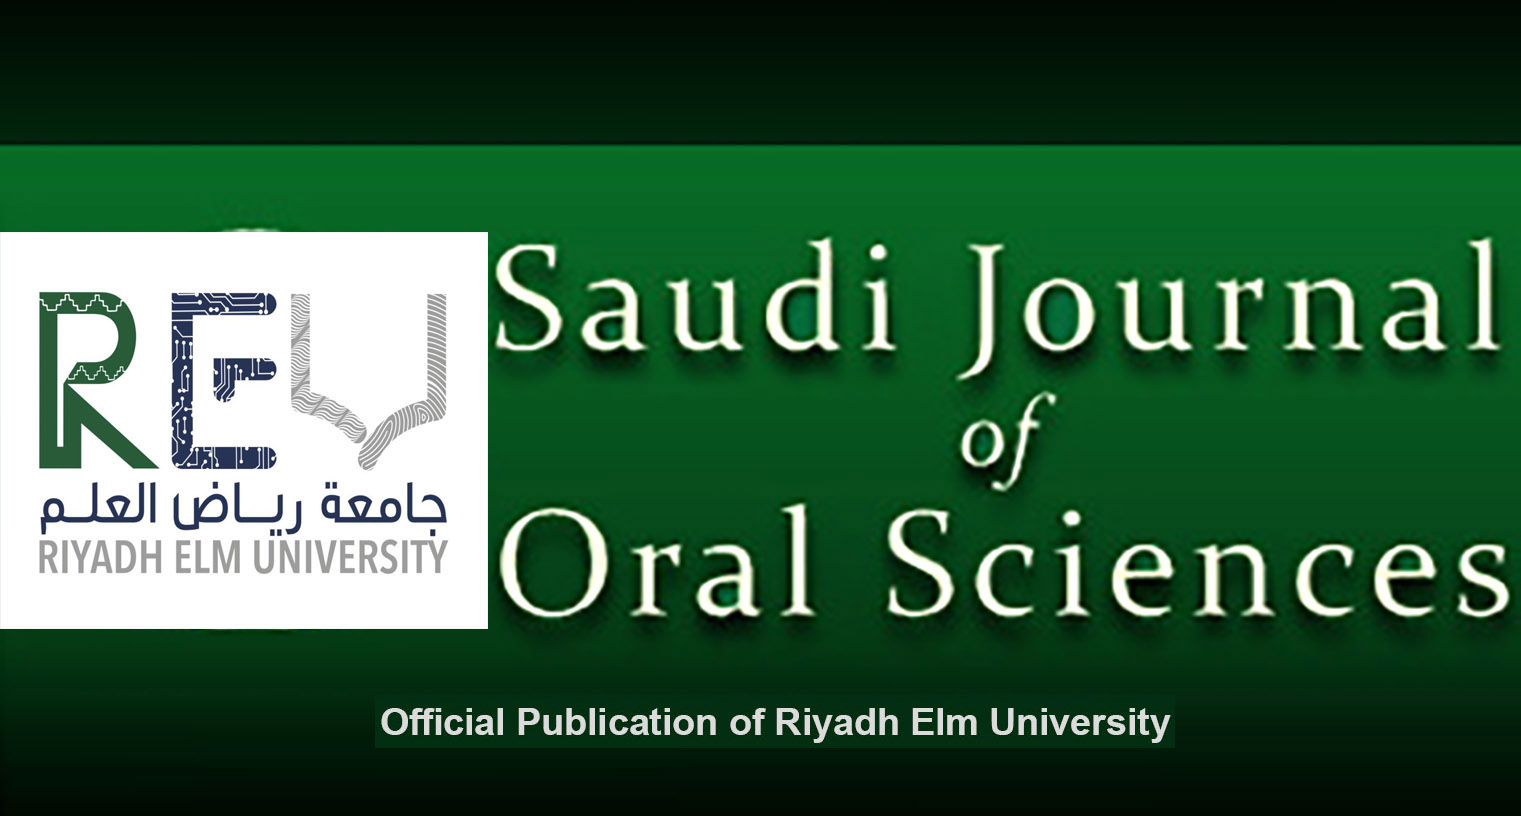 Saudi Journal of Oral Sciences